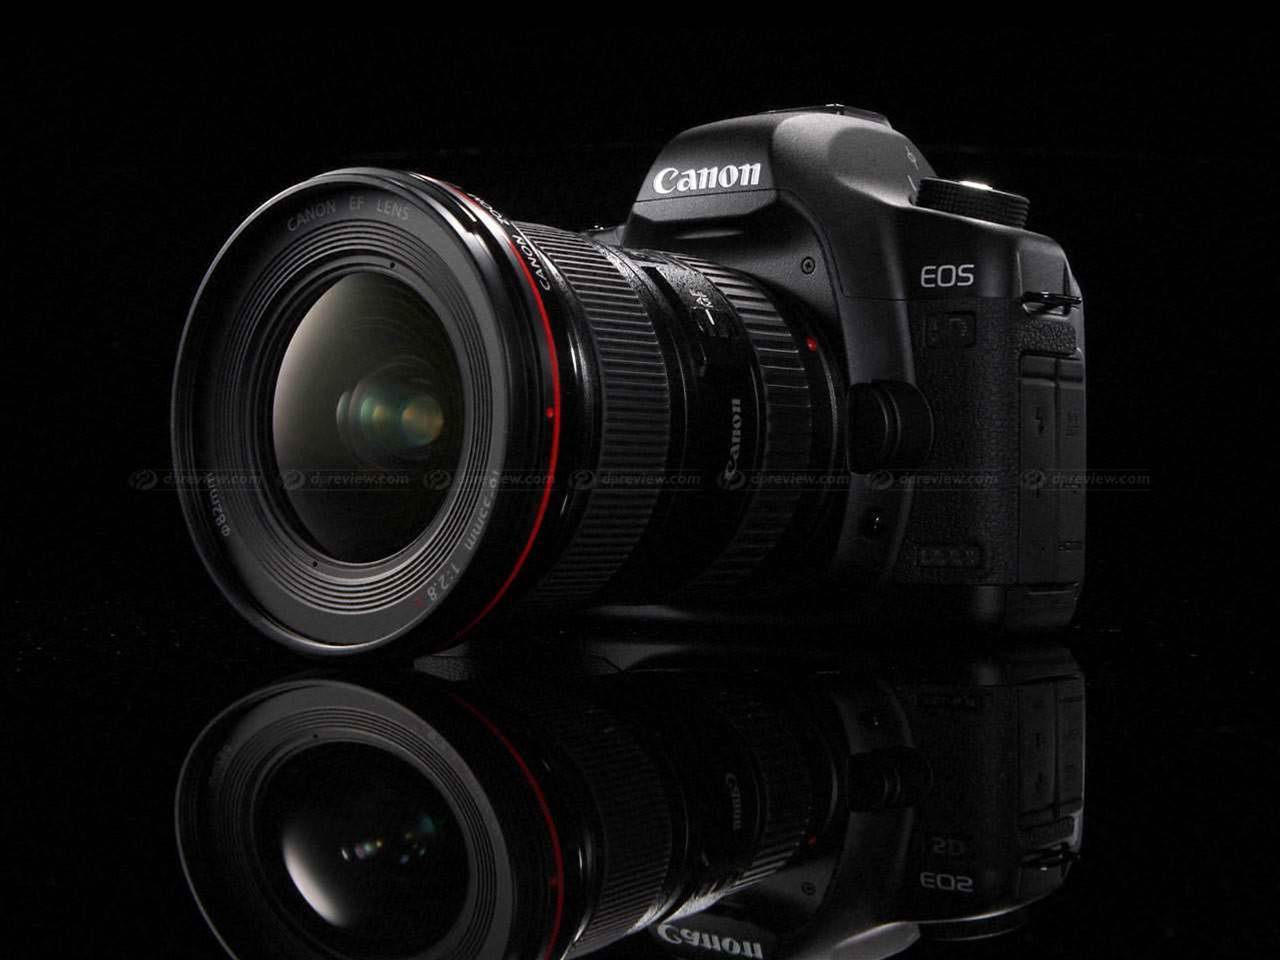 Canon 5D Mark III announcement coming in March?